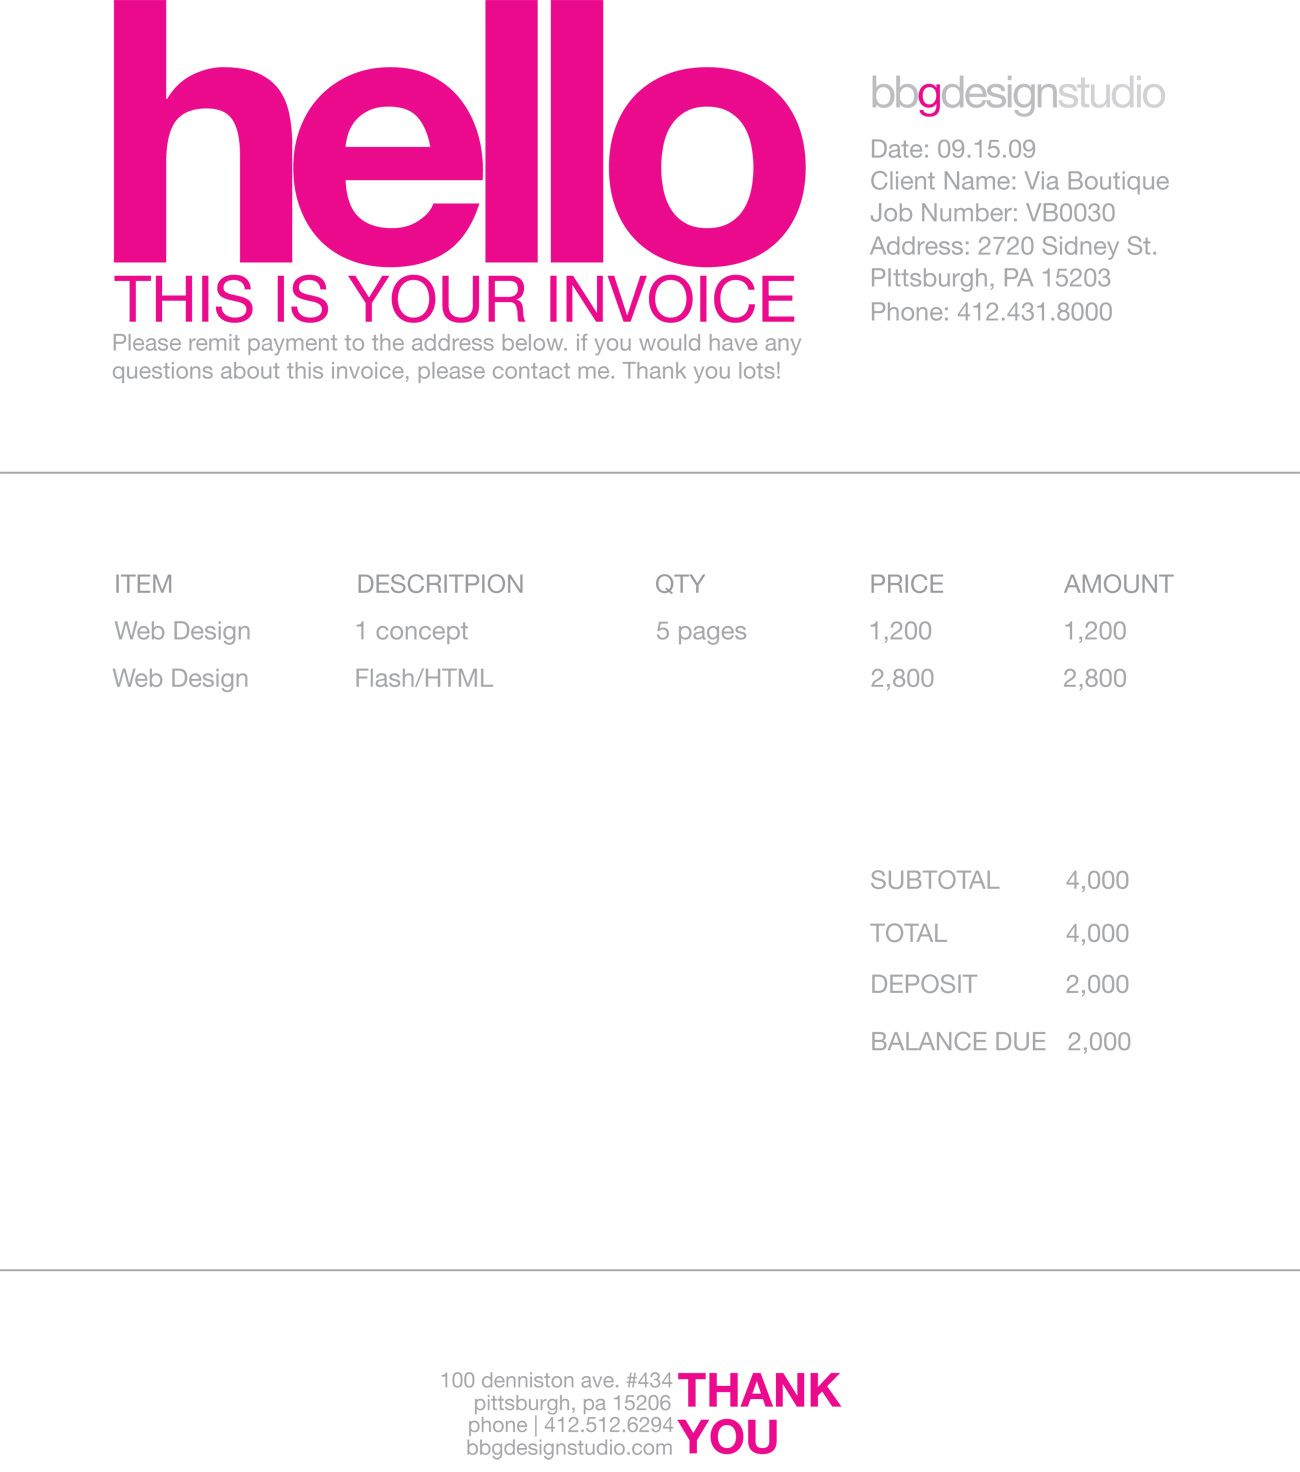 Darkfaderus  Surprising  Images About Invoice Design On Pinterest With Gorgeous Free Invoice Template Download For Excel Besides Download Invoice Free Furthermore Garage Invoicing Software With Cool Invoices Excel Also Dealer Invoice Price Canada Free In Addition Invoice Template For Self Employed And Online Invoices Free Template As Well As Css Invoice Template Additionally Word Invoice Template Uk From Pinterestcom With Darkfaderus  Gorgeous  Images About Invoice Design On Pinterest With Cool Free Invoice Template Download For Excel Besides Download Invoice Free Furthermore Garage Invoicing Software And Surprising Invoices Excel Also Dealer Invoice Price Canada Free In Addition Invoice Template For Self Employed From Pinterestcom